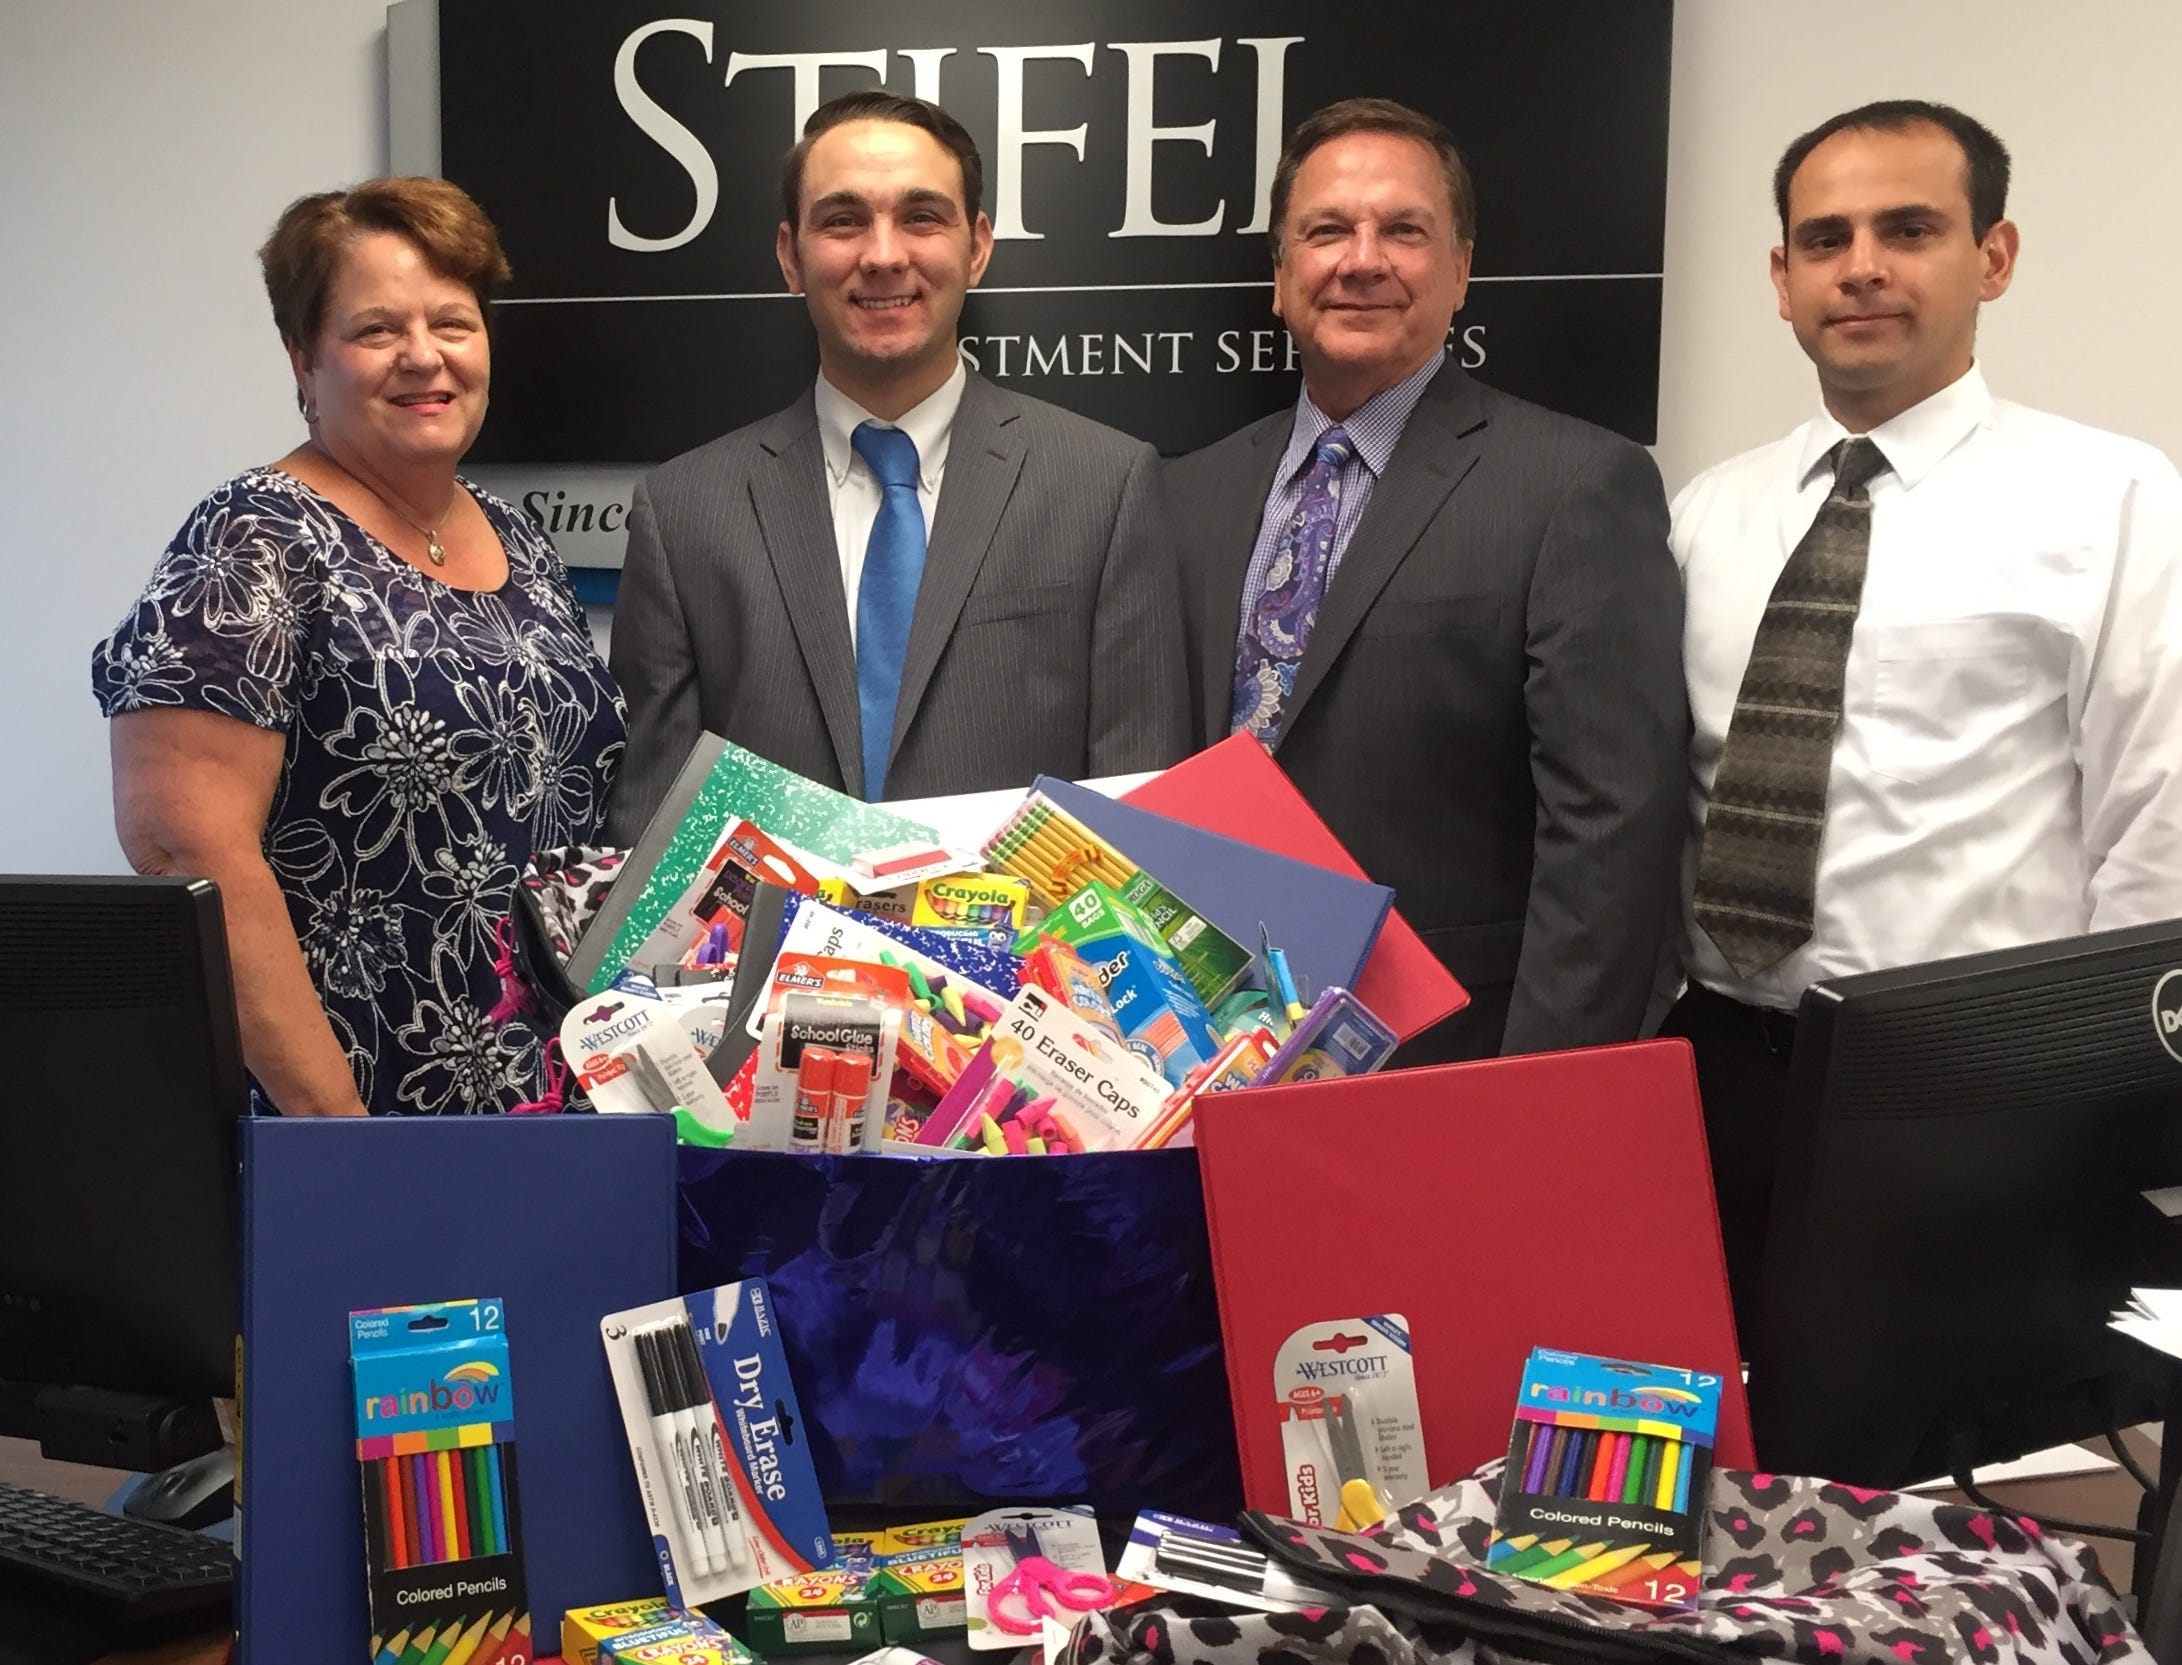 BACK TO SCHOOL - Stockwell Elementary students and staff were the recipients of back to school supplies from Stifel Ruder Investment Group. Financial Advisor Bryan Ruder attended Stockwell and continues provide needed school items each year. Members of the firm pictured are Sharon Ruder, Bryan Ruder, Thomas Ruder and Robert Kozsan.